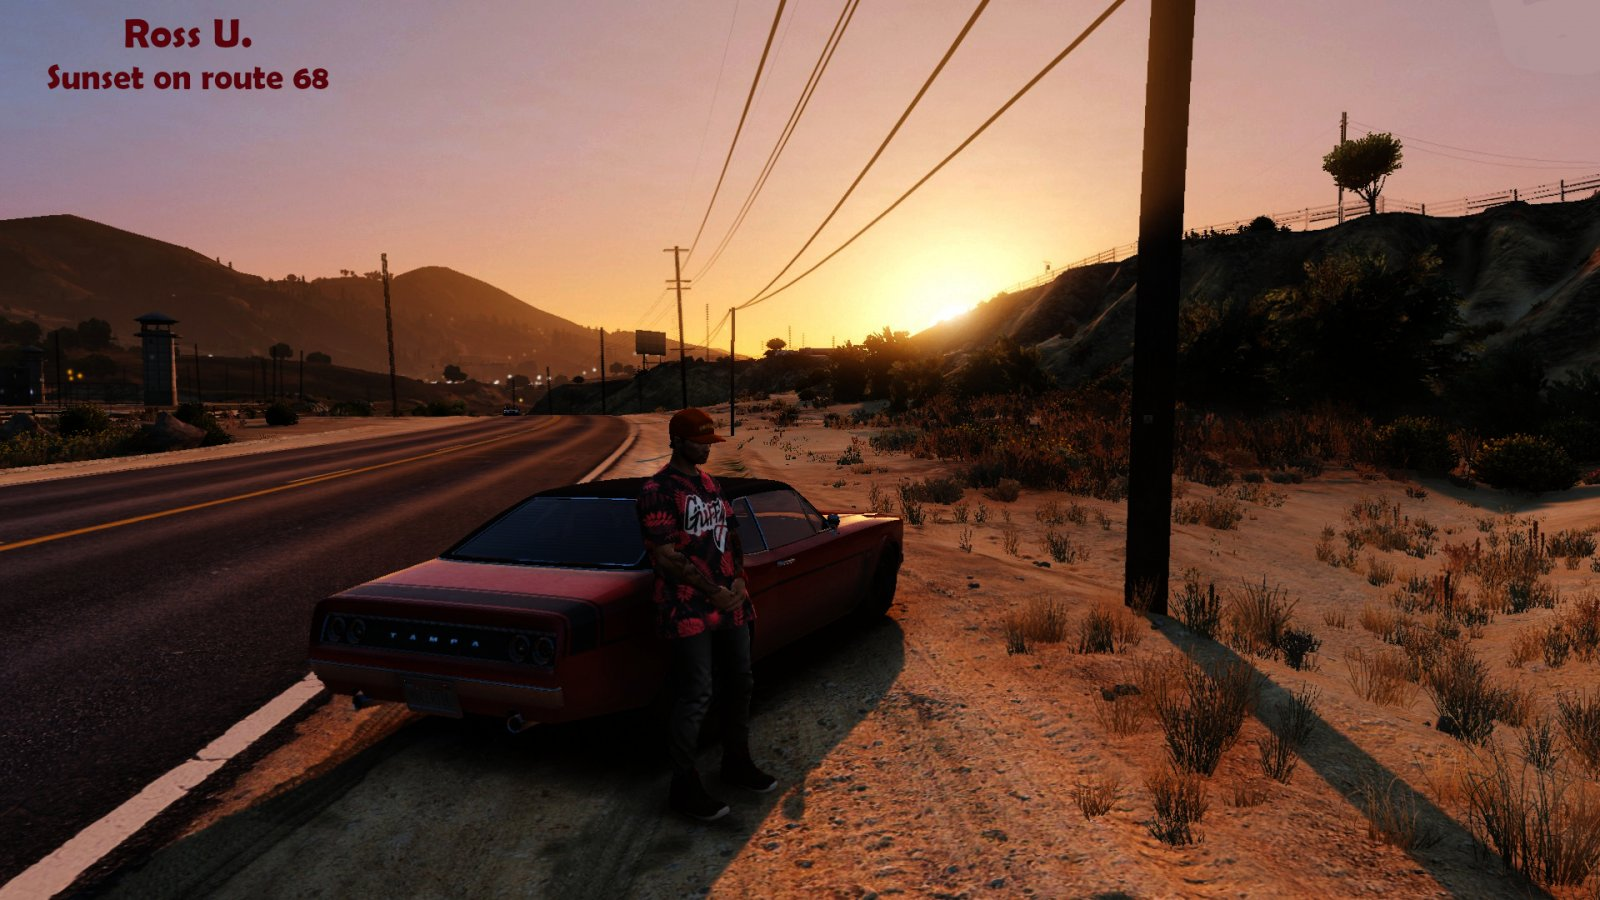 Route 68 Sunset.jpg